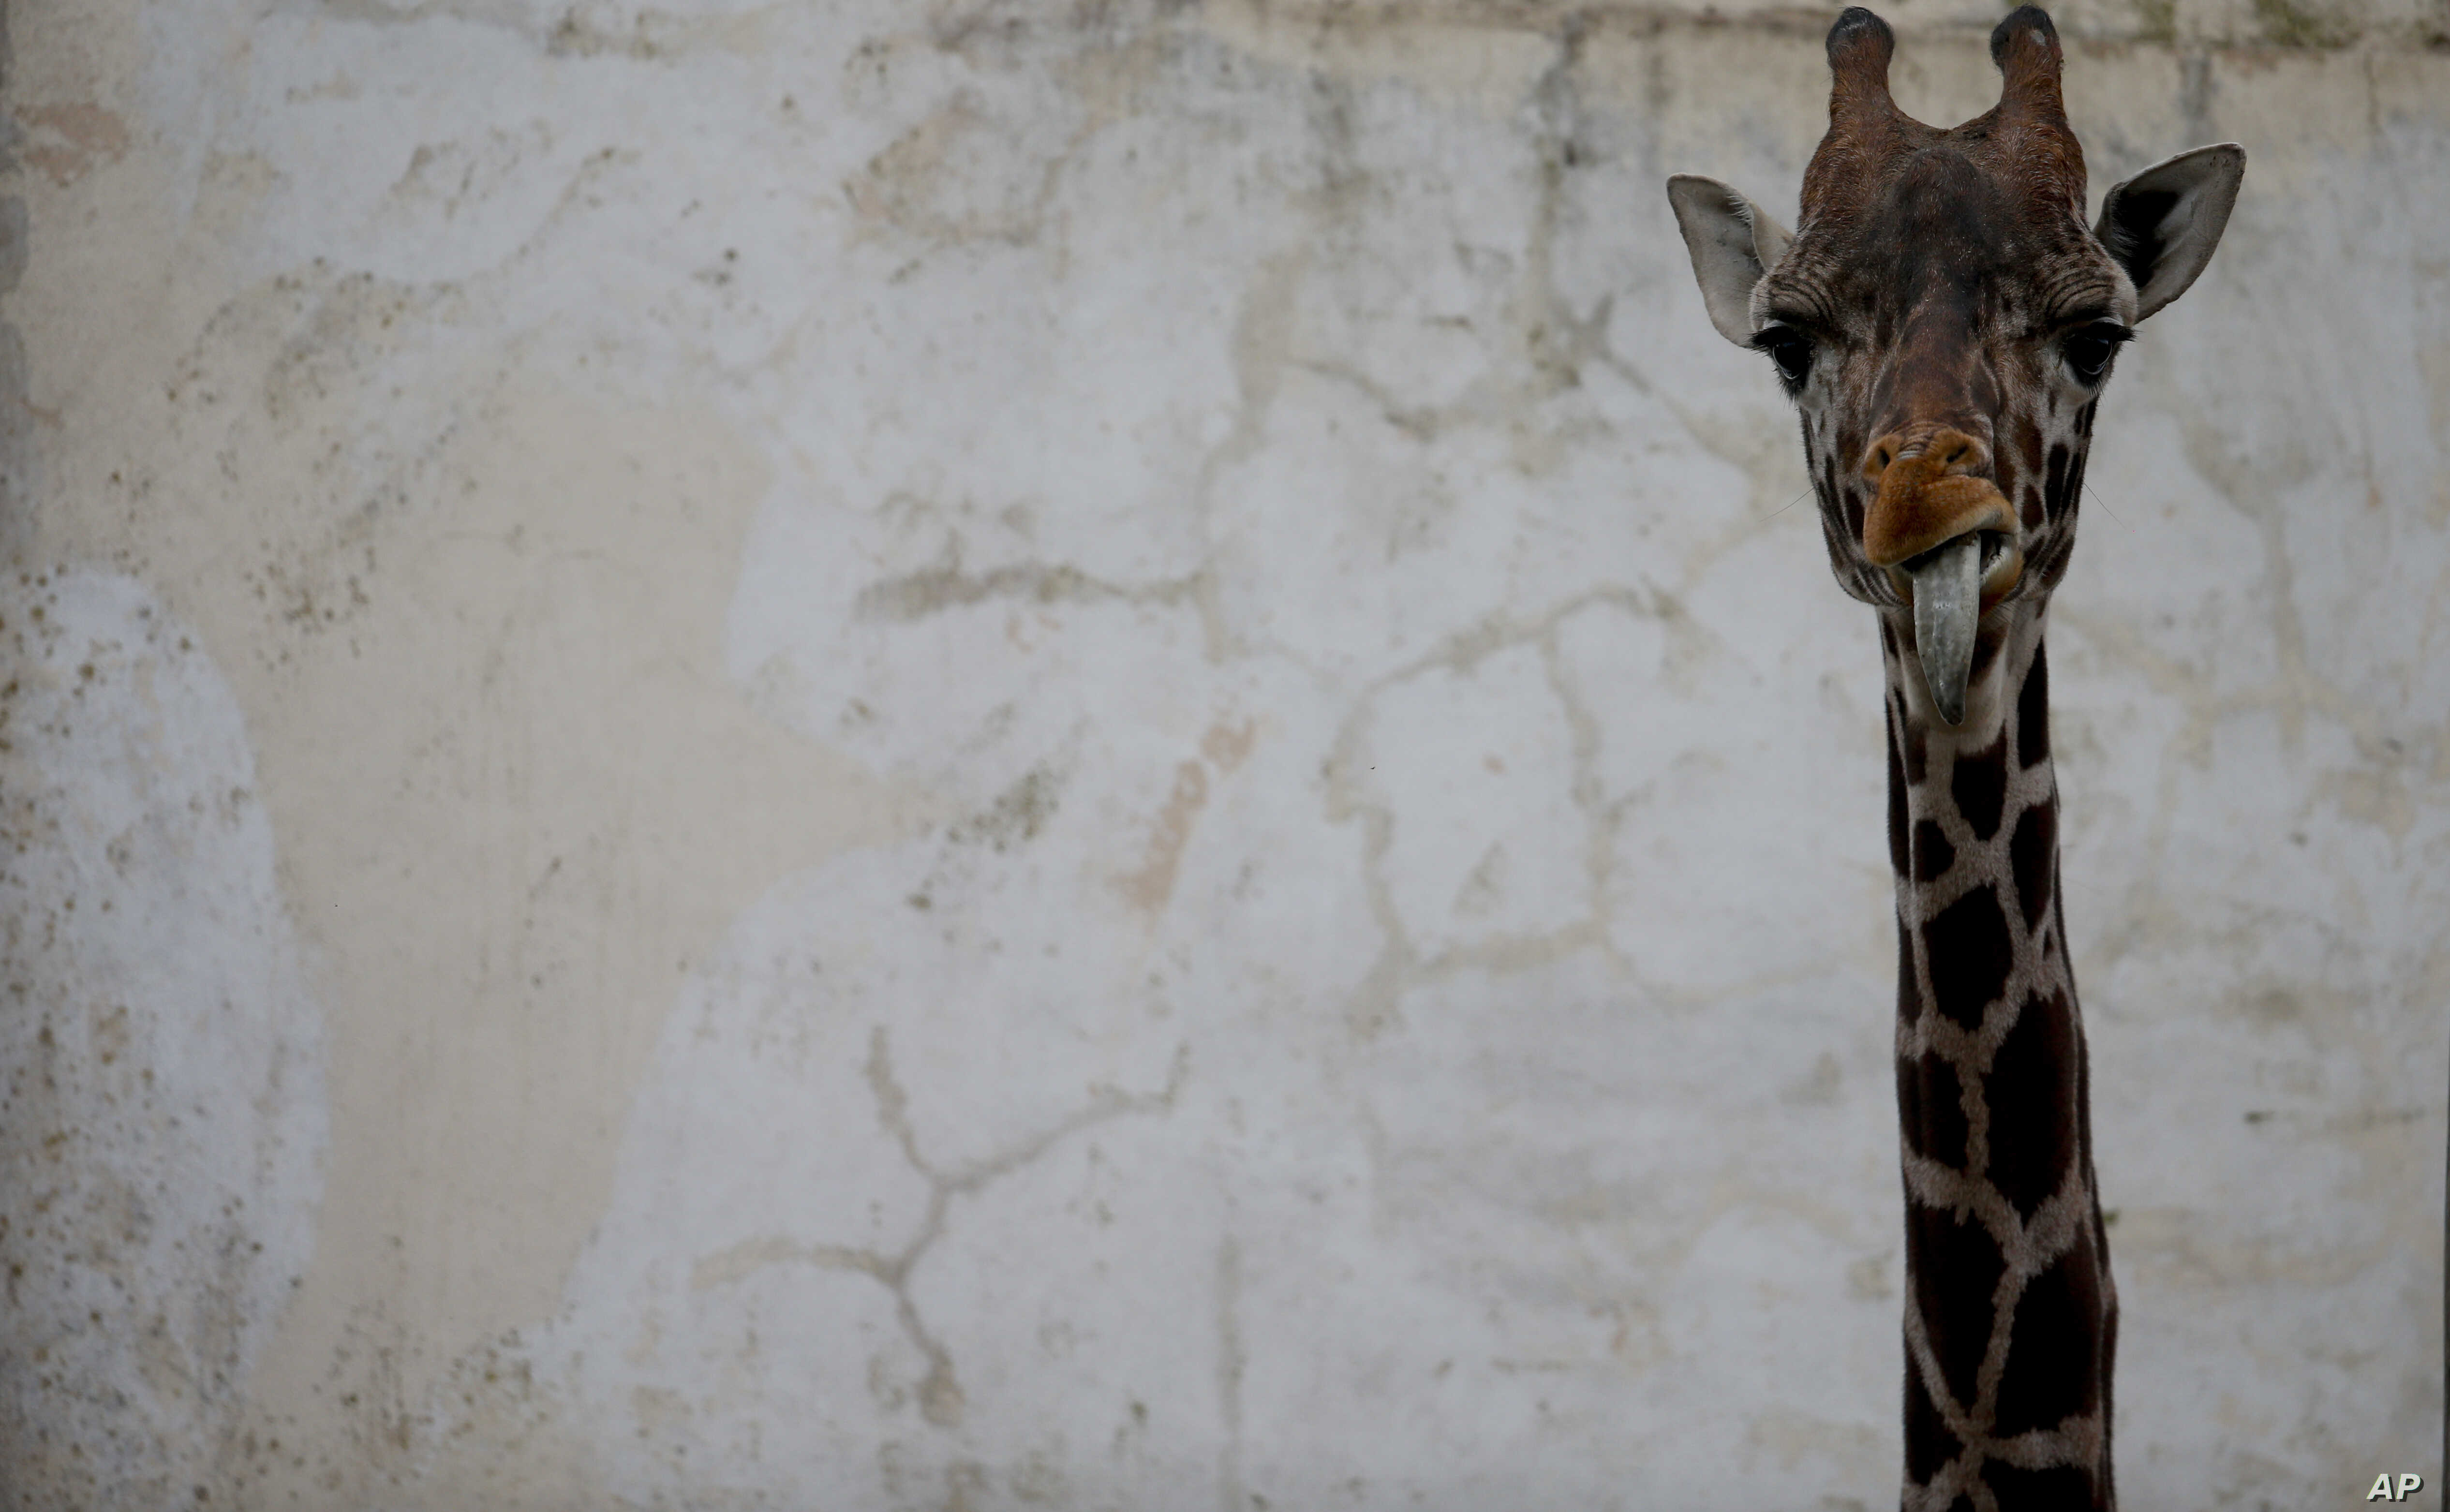 Ciro, a juvenile giraffe, stands in his enclosure, which he use to share with his mom Shaki, at the eco-park in Buenos Aires, Argentina, Aug. 7, 2018. Shaki died recently because of a stomach ulcer.